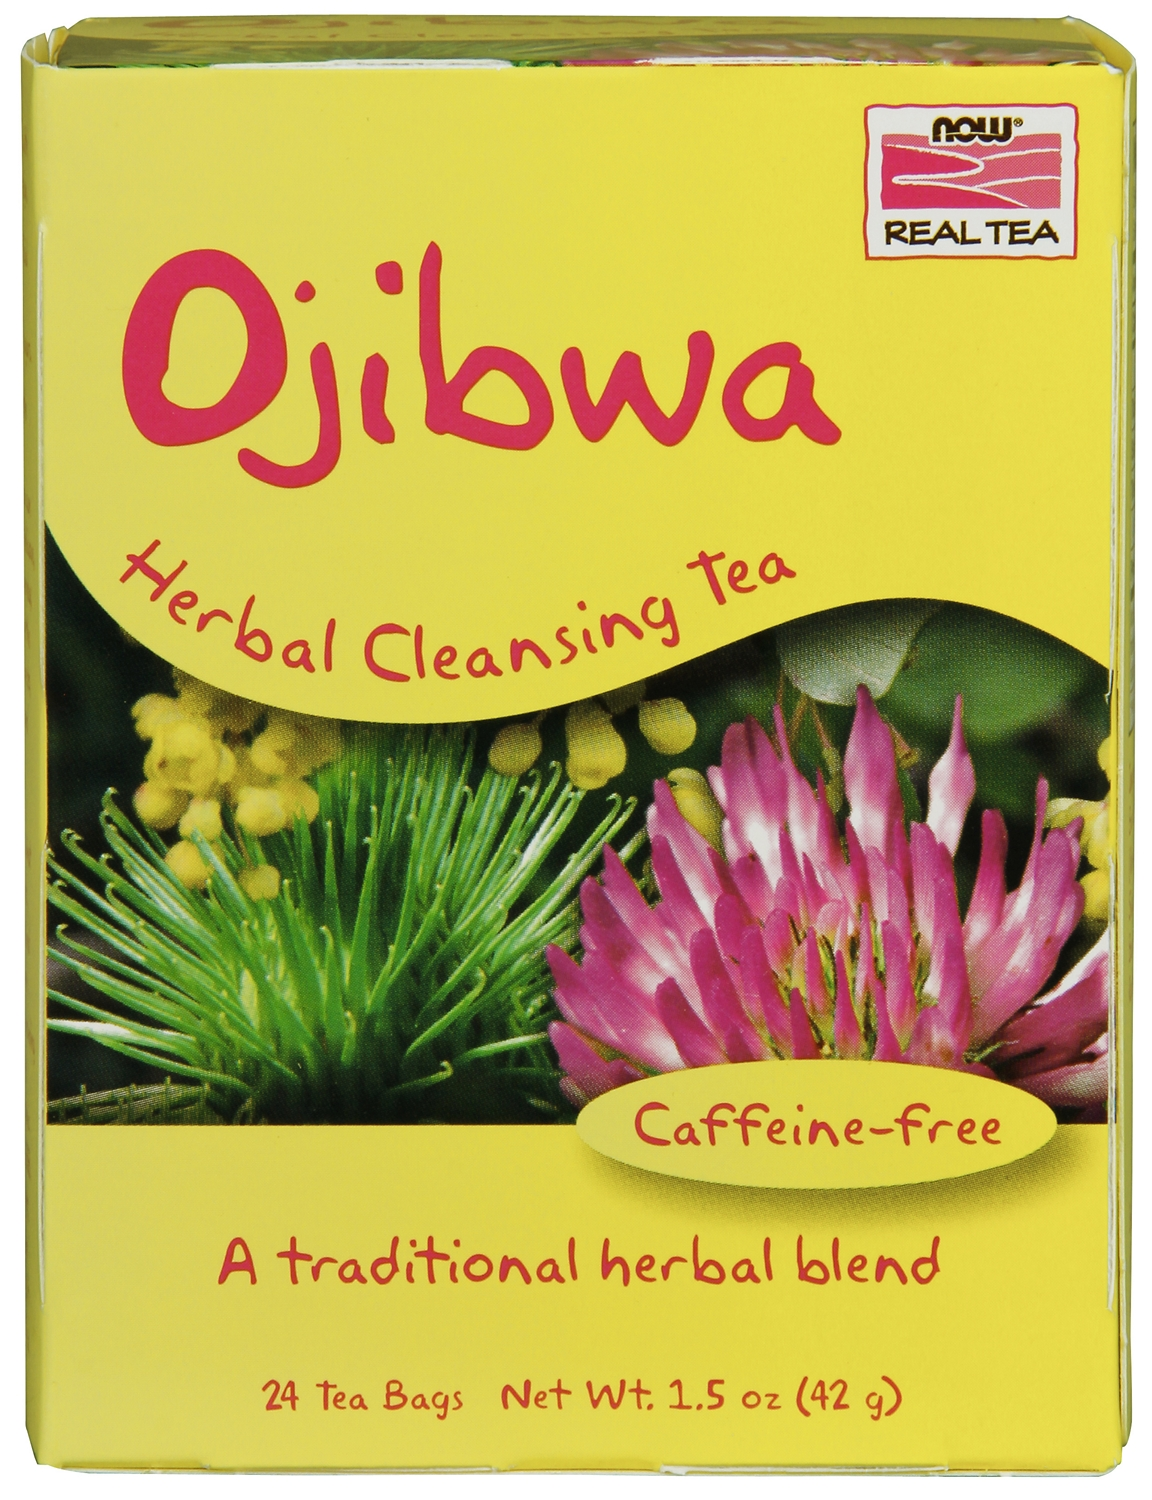 Ojibwa Herbal Cleansing Tea 24 Tea Bags by NOW